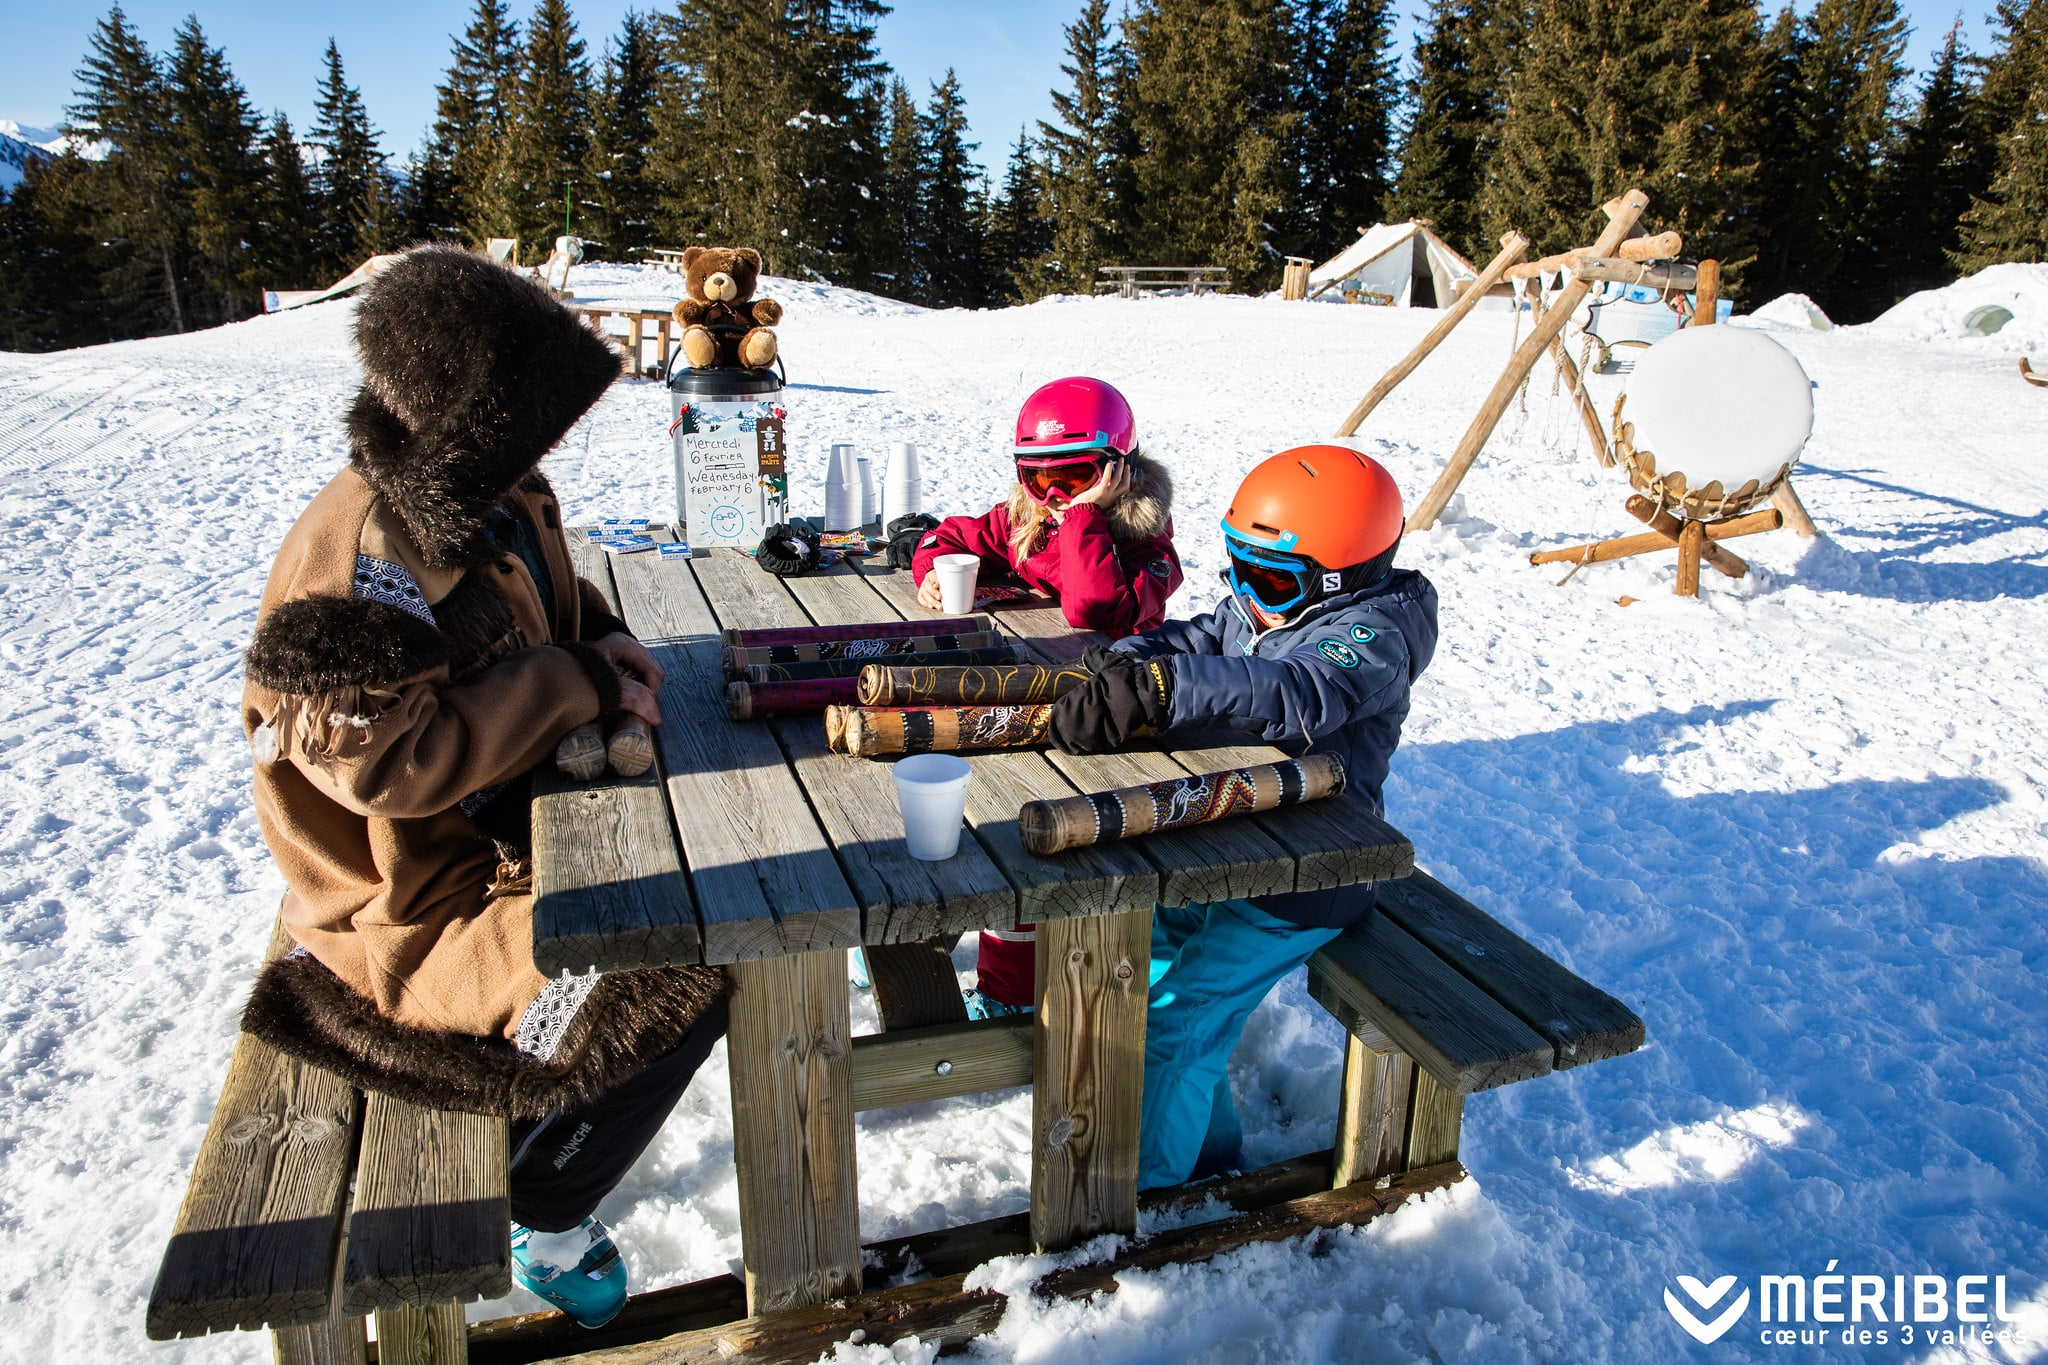 Picnic With Kids Skiing In Meribel And Courchevel